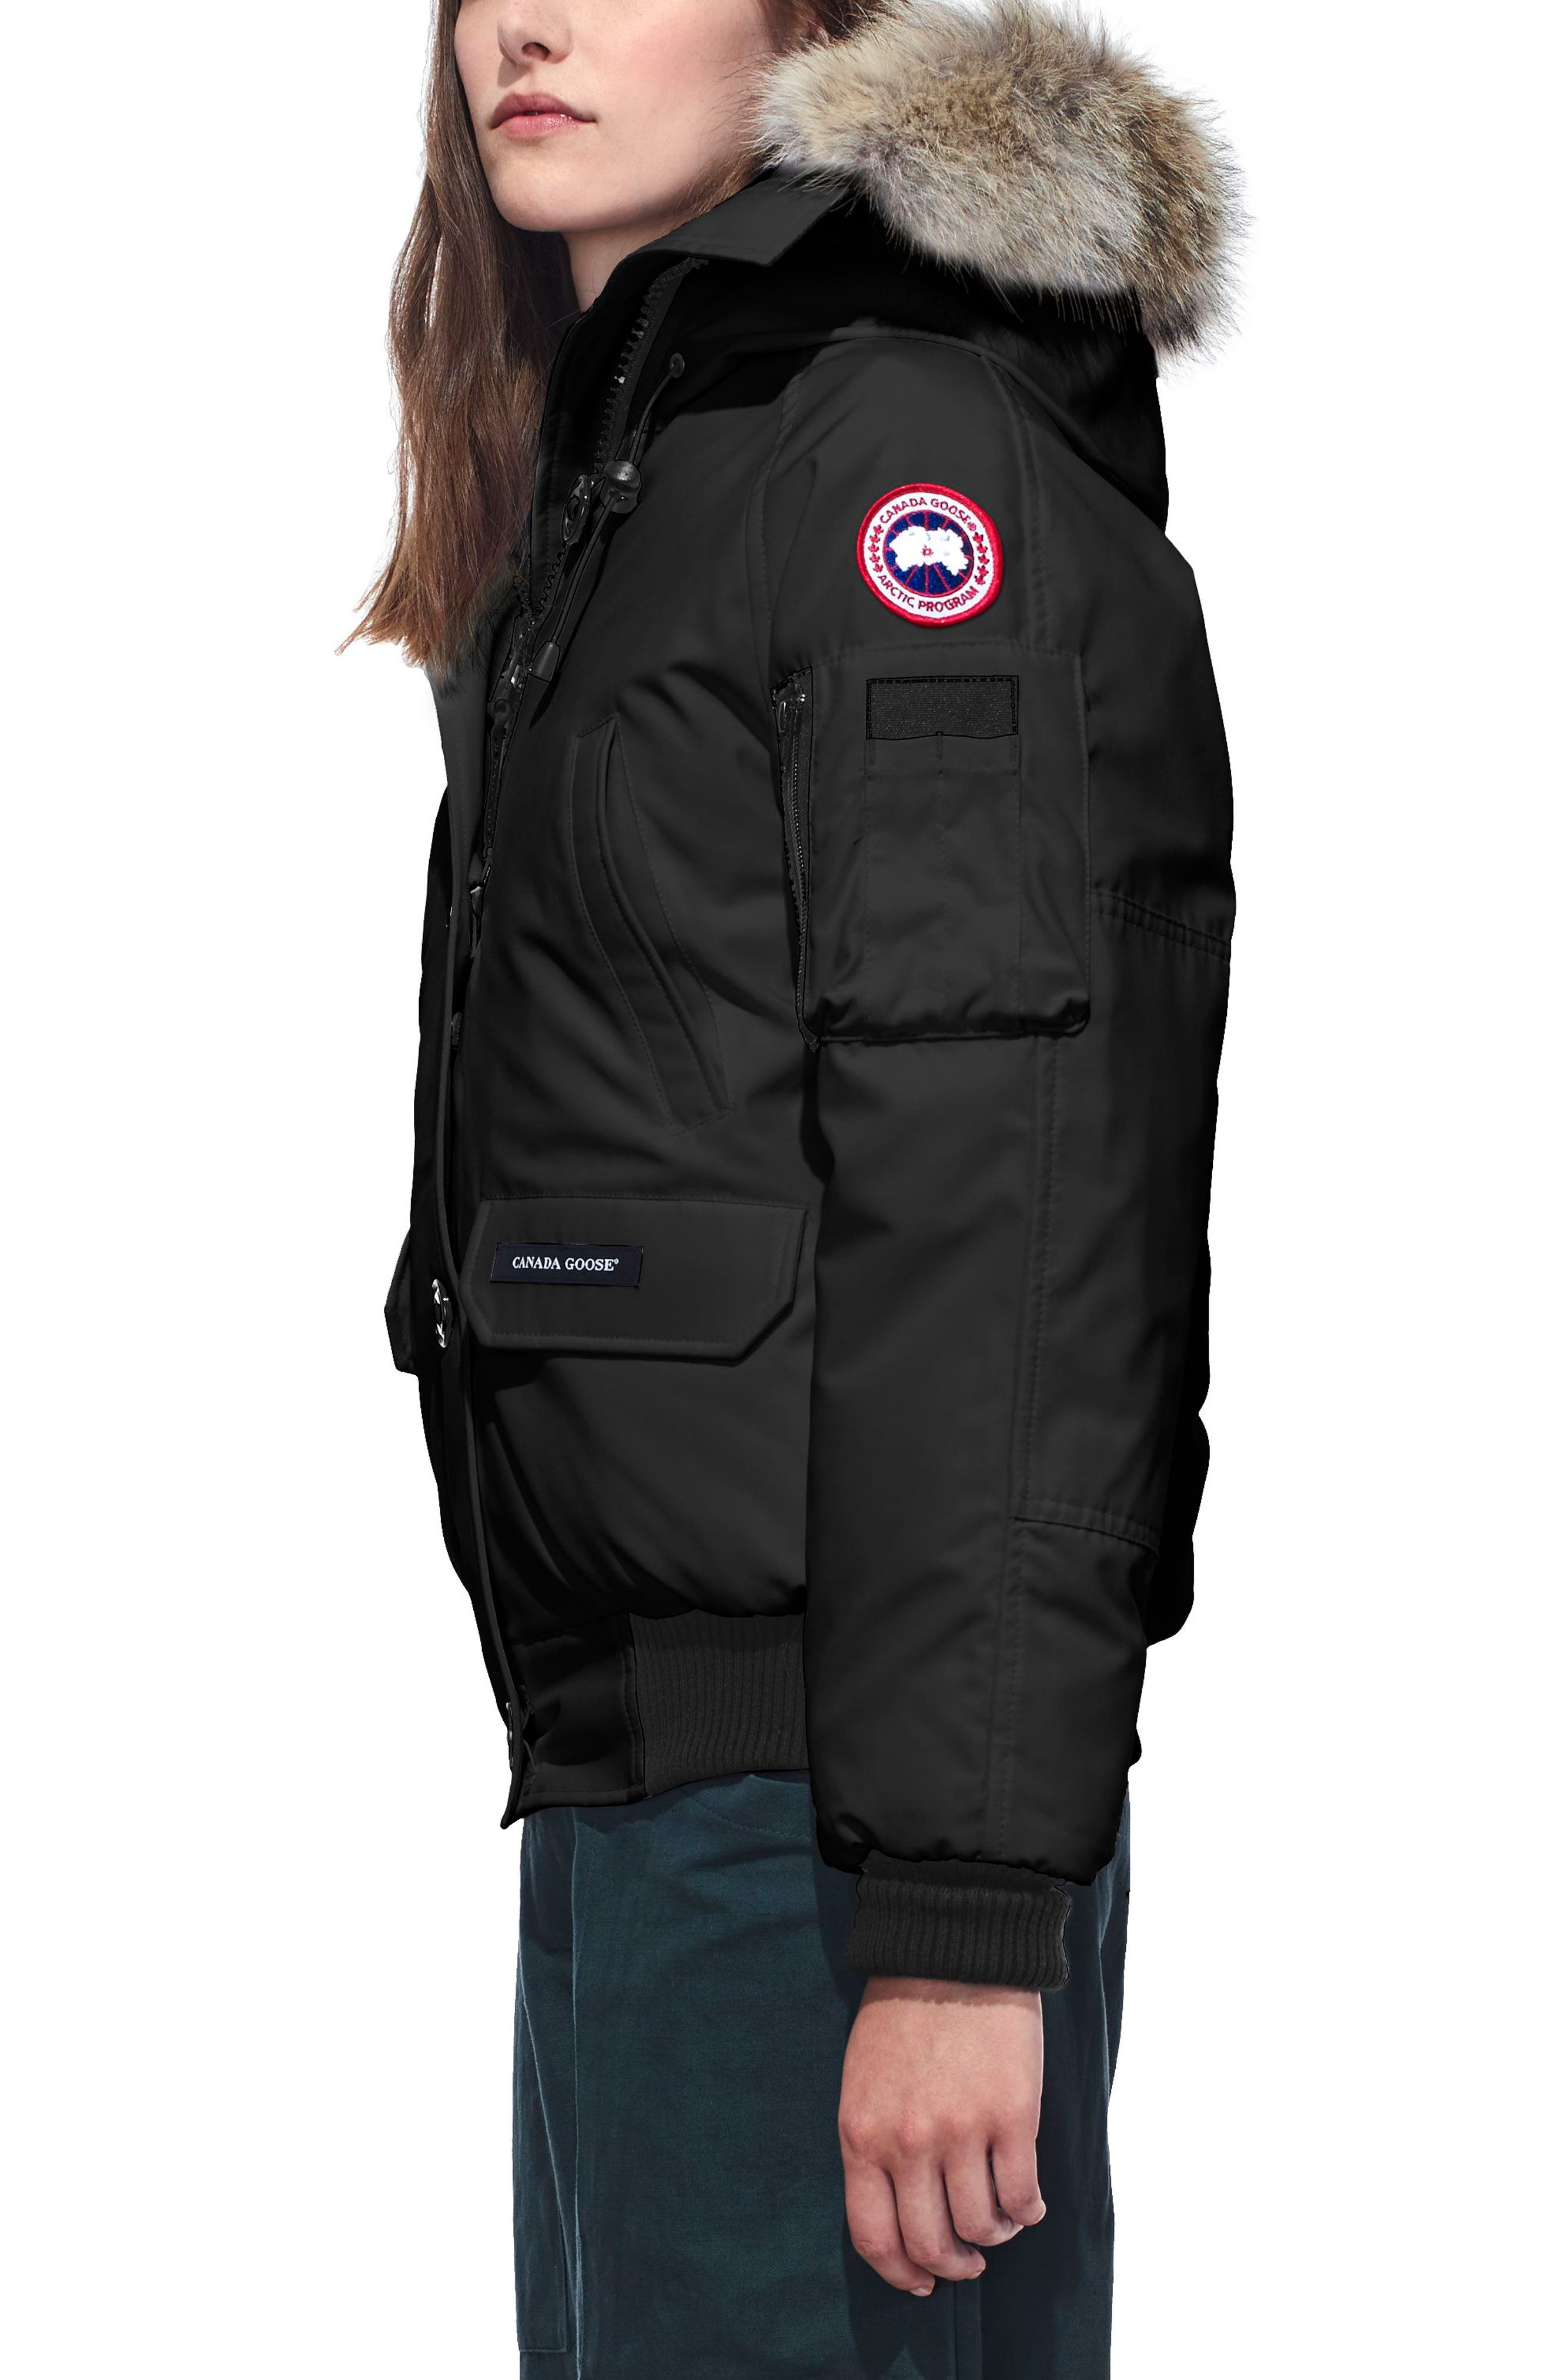 CANADA GOOSE, Chilliwack Fusion Fit 625 Fill Power Down Bomber Jacket with Genuine Coyote Fur Trim, Alternate thumbnail 3, color, BLACK